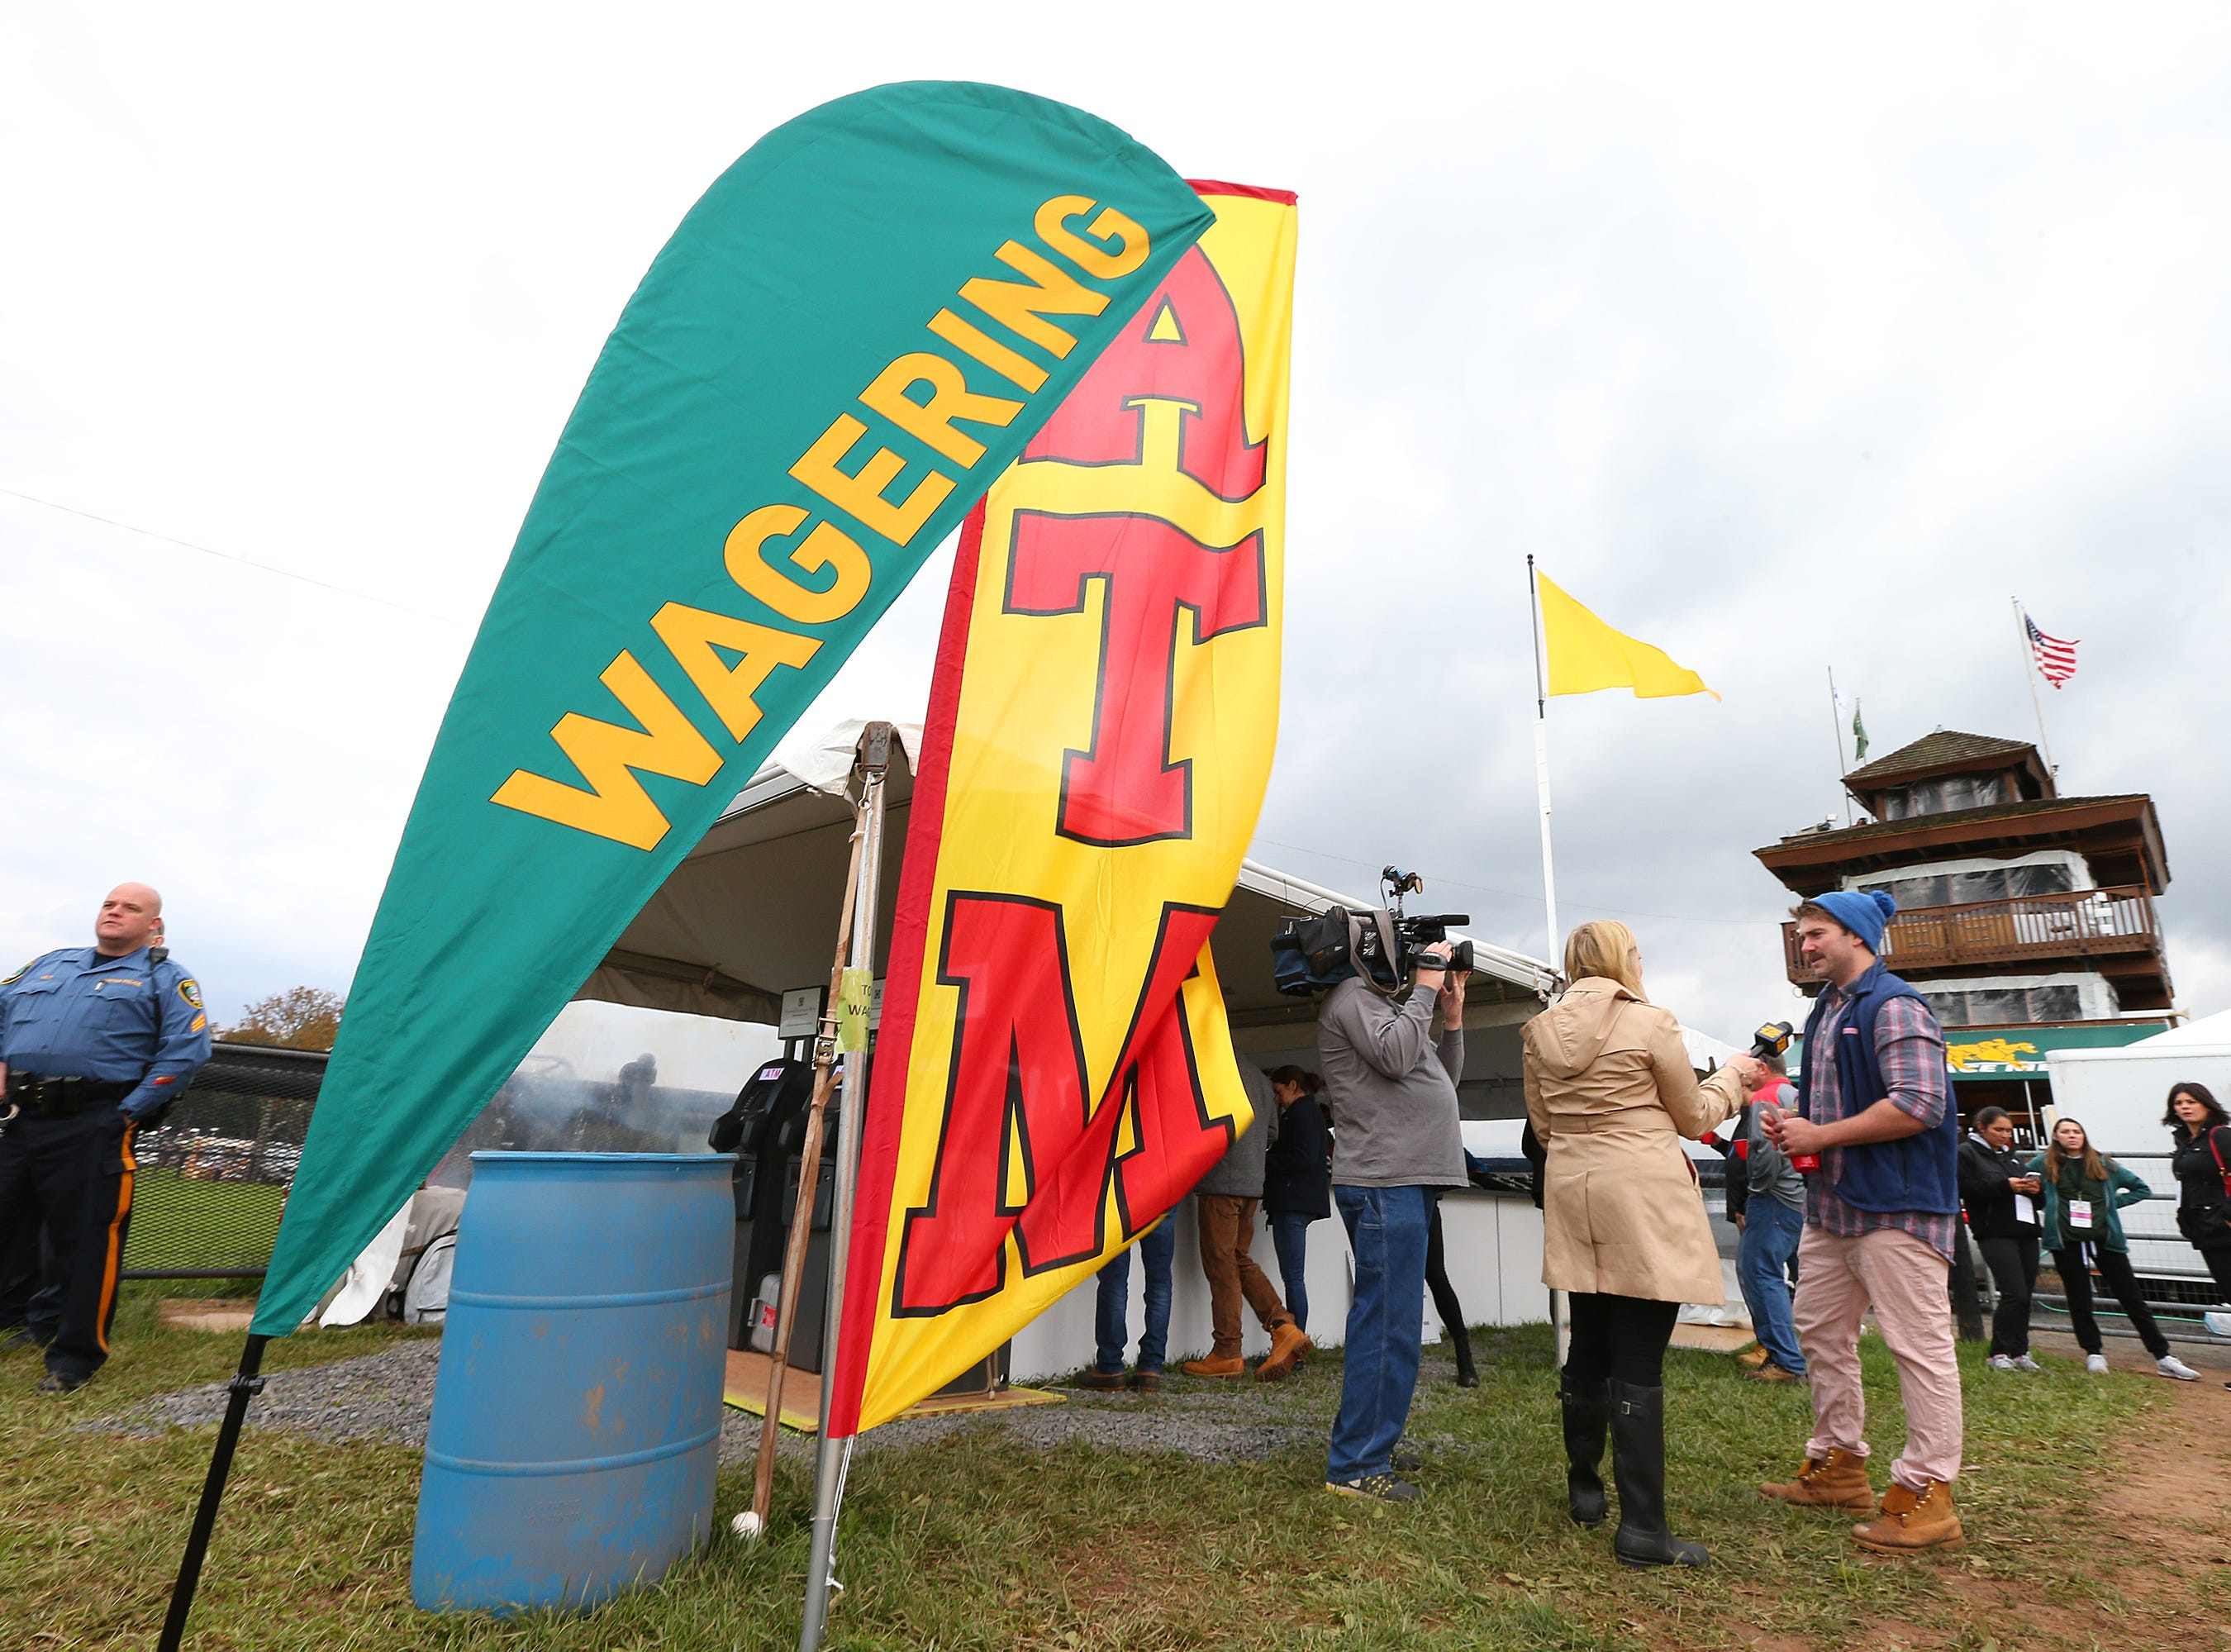 Wagering is now legal during the 98th running of the Far Hills Race Meeting at Moorland Farm in Far Hills, N.J. on Saturday, Oct. 20, 2015. Photo by Rich Schultz/ HNT